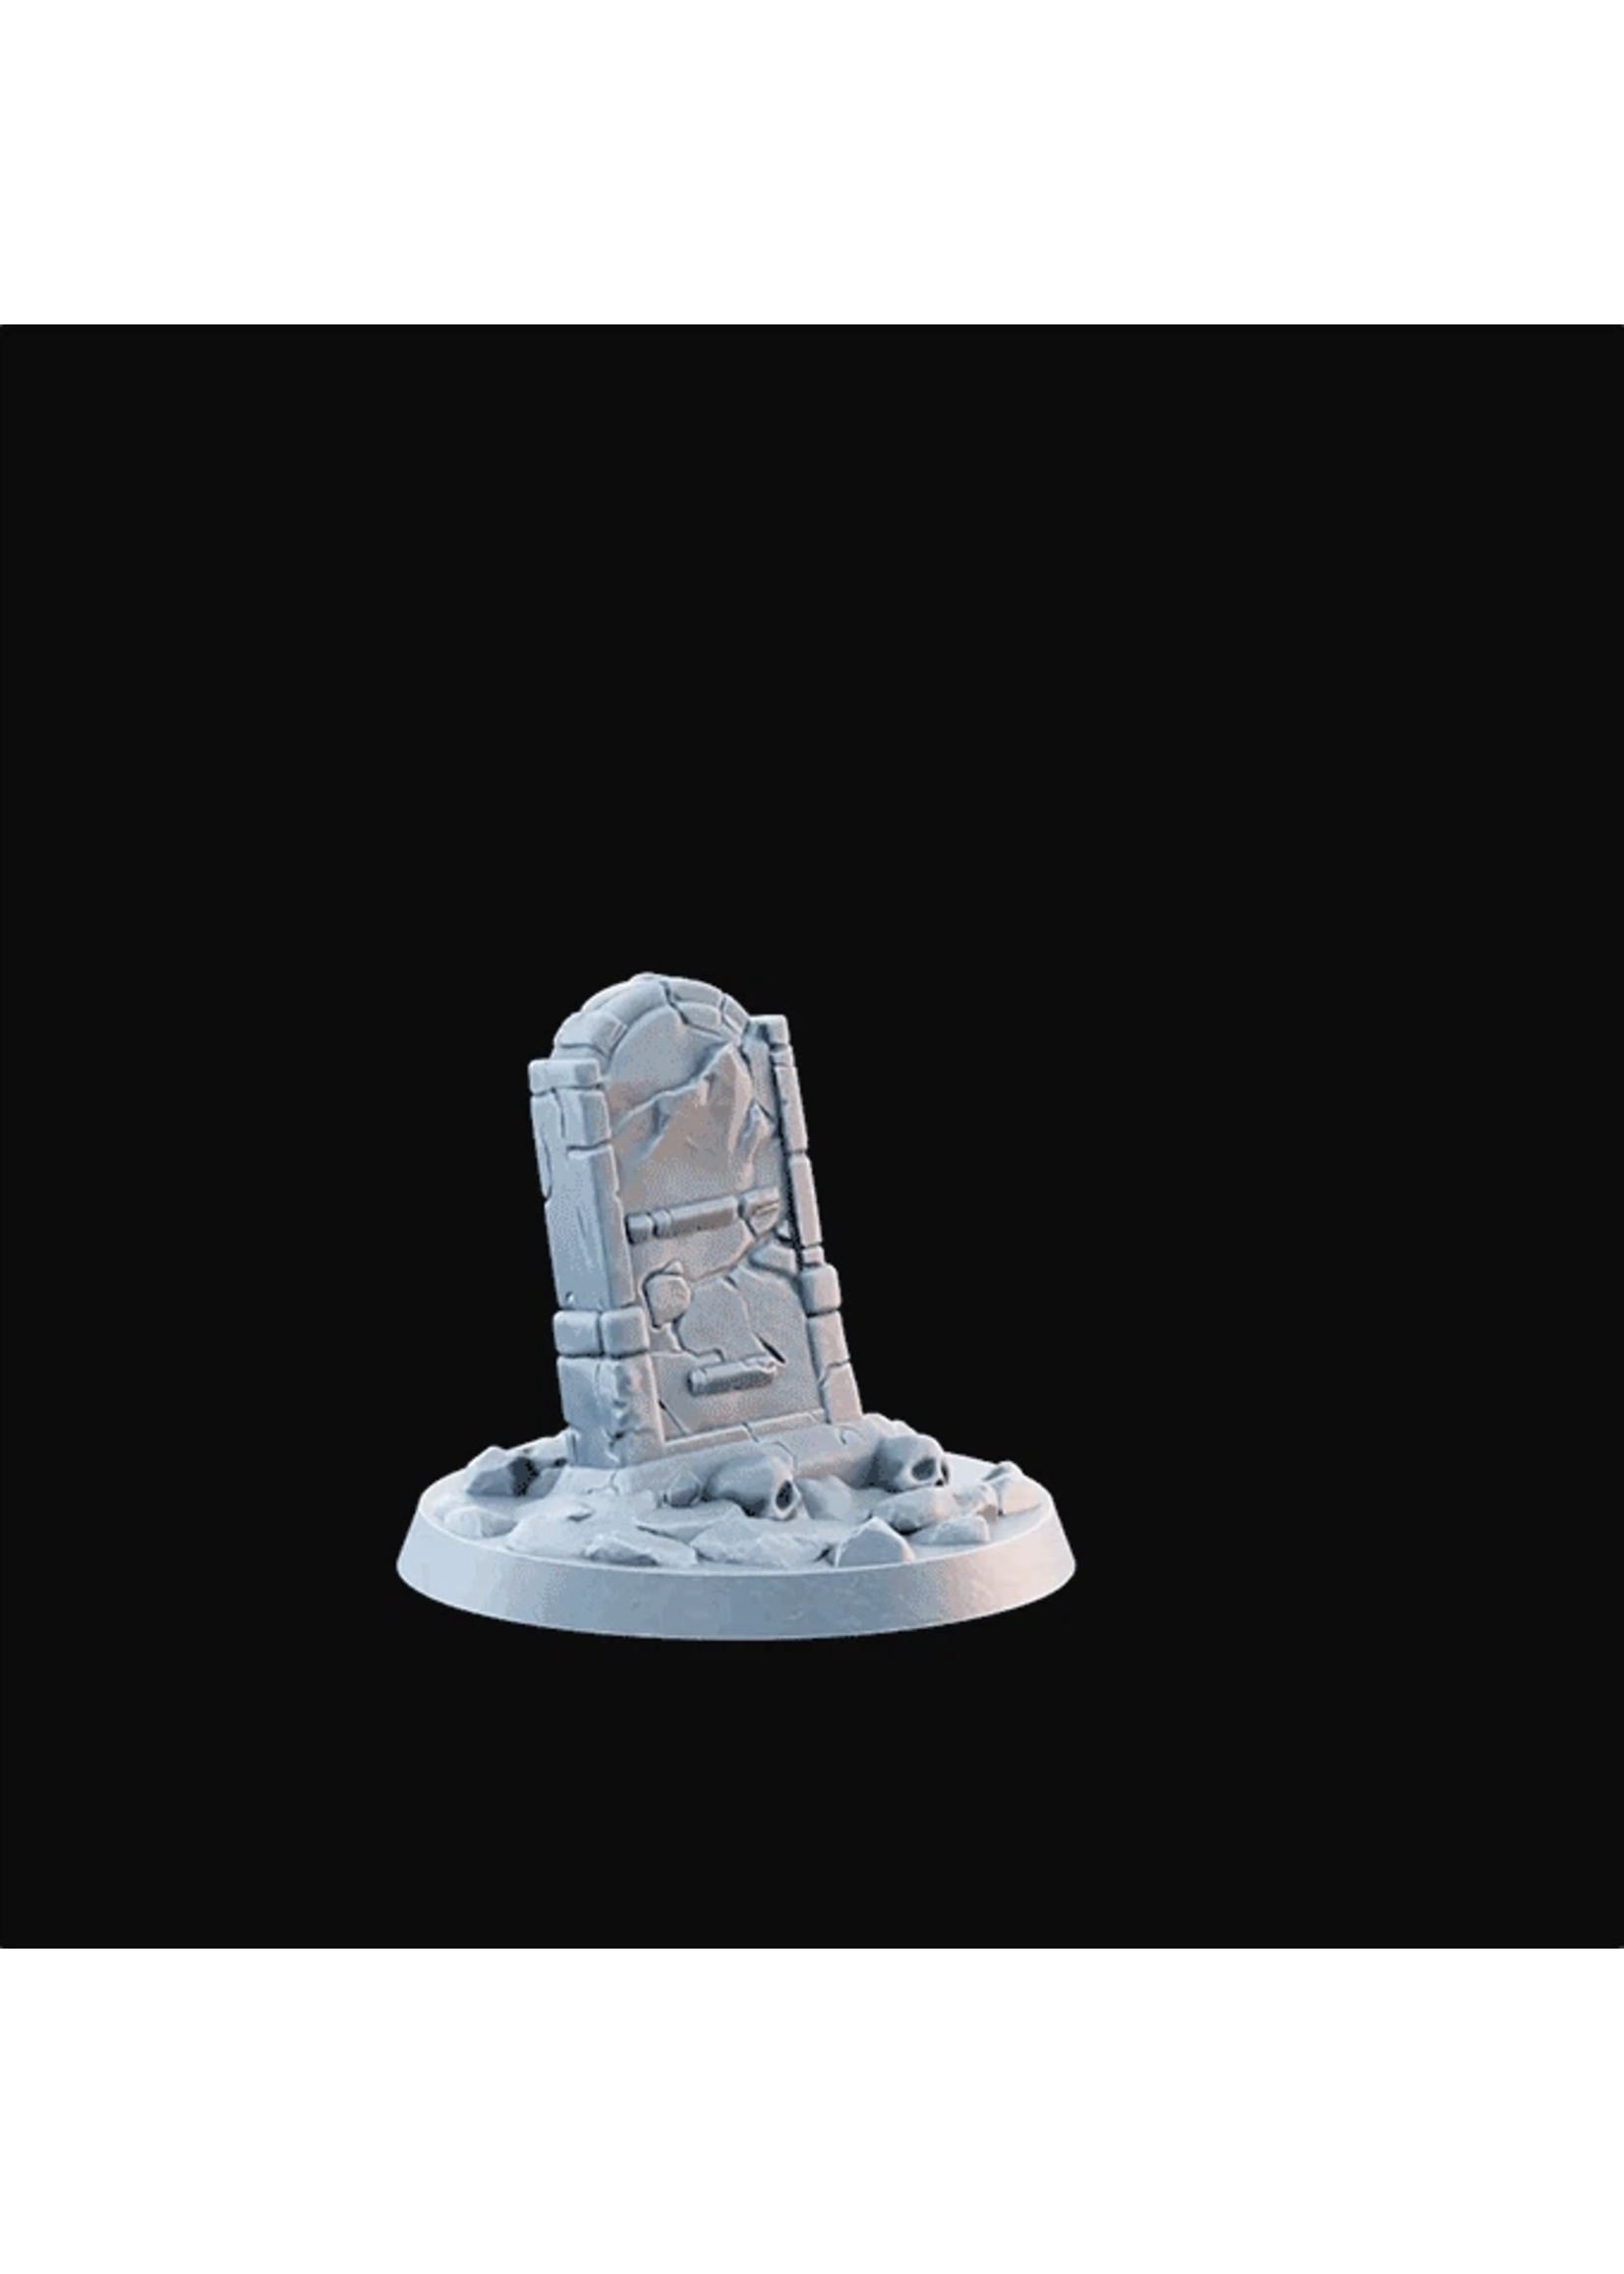 3D Printed Miniature - Scatter Tombstone02.Stl - Dungeons & Dragons - Desolate Plains KS